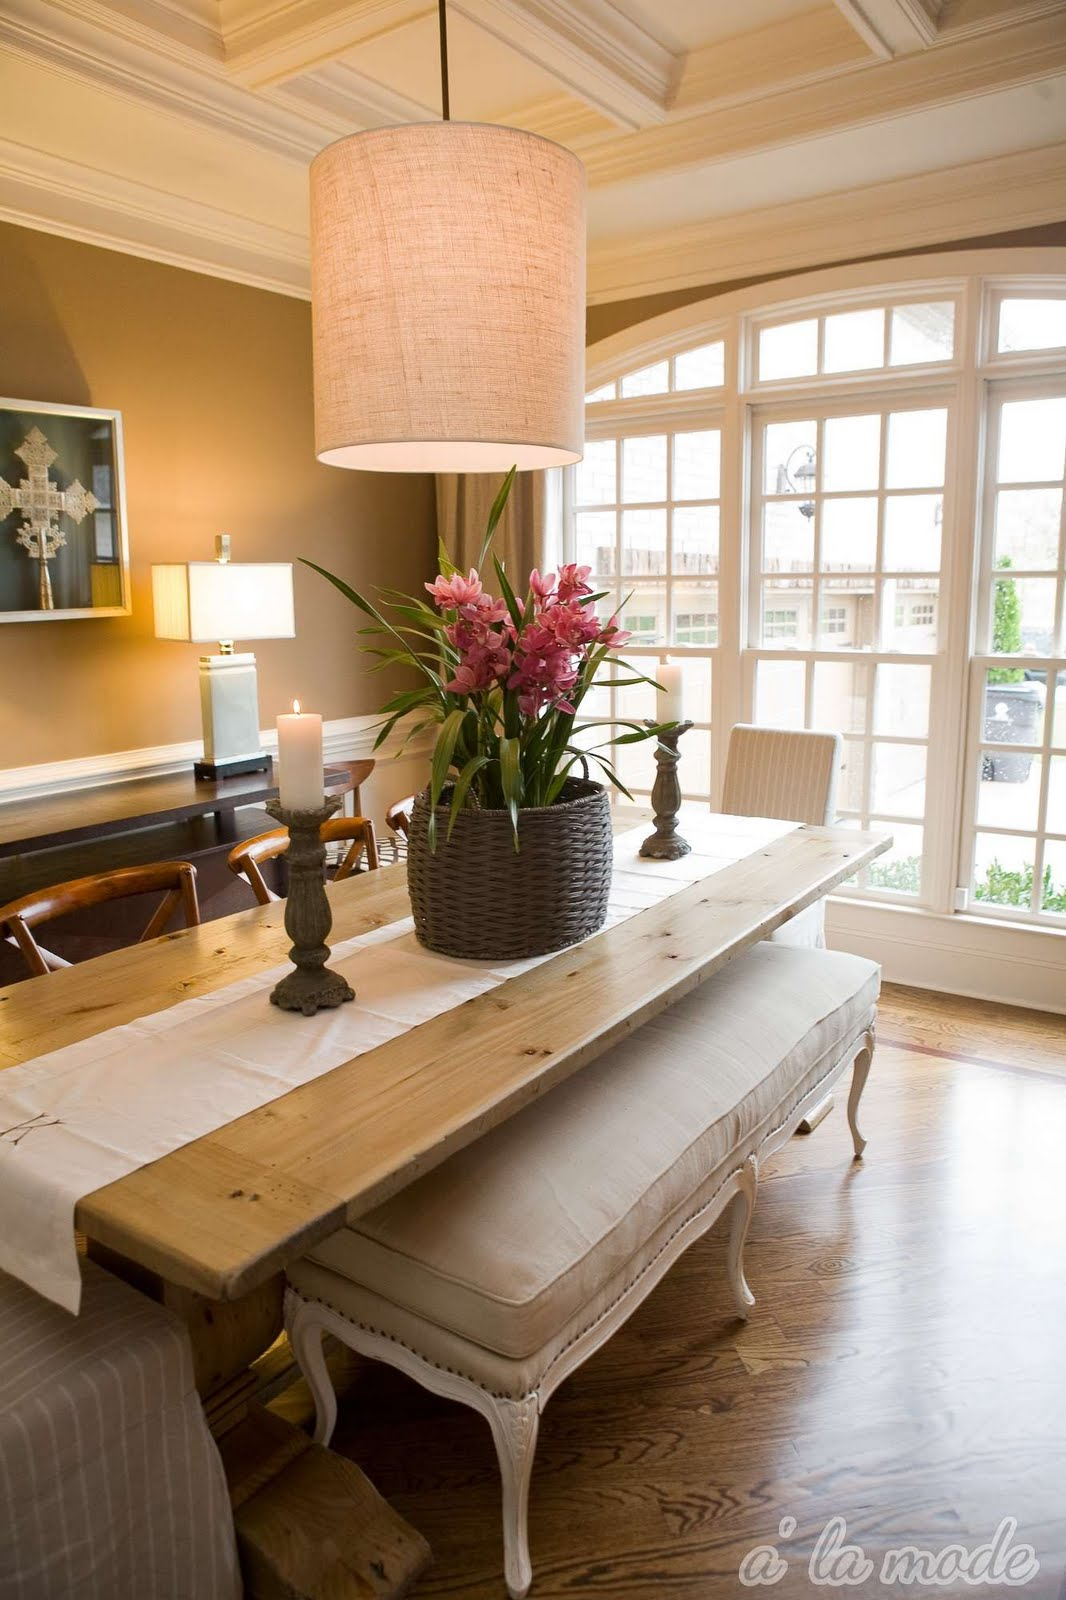 Remarkable Target Dining Room Table Photos - 3D house designs ...